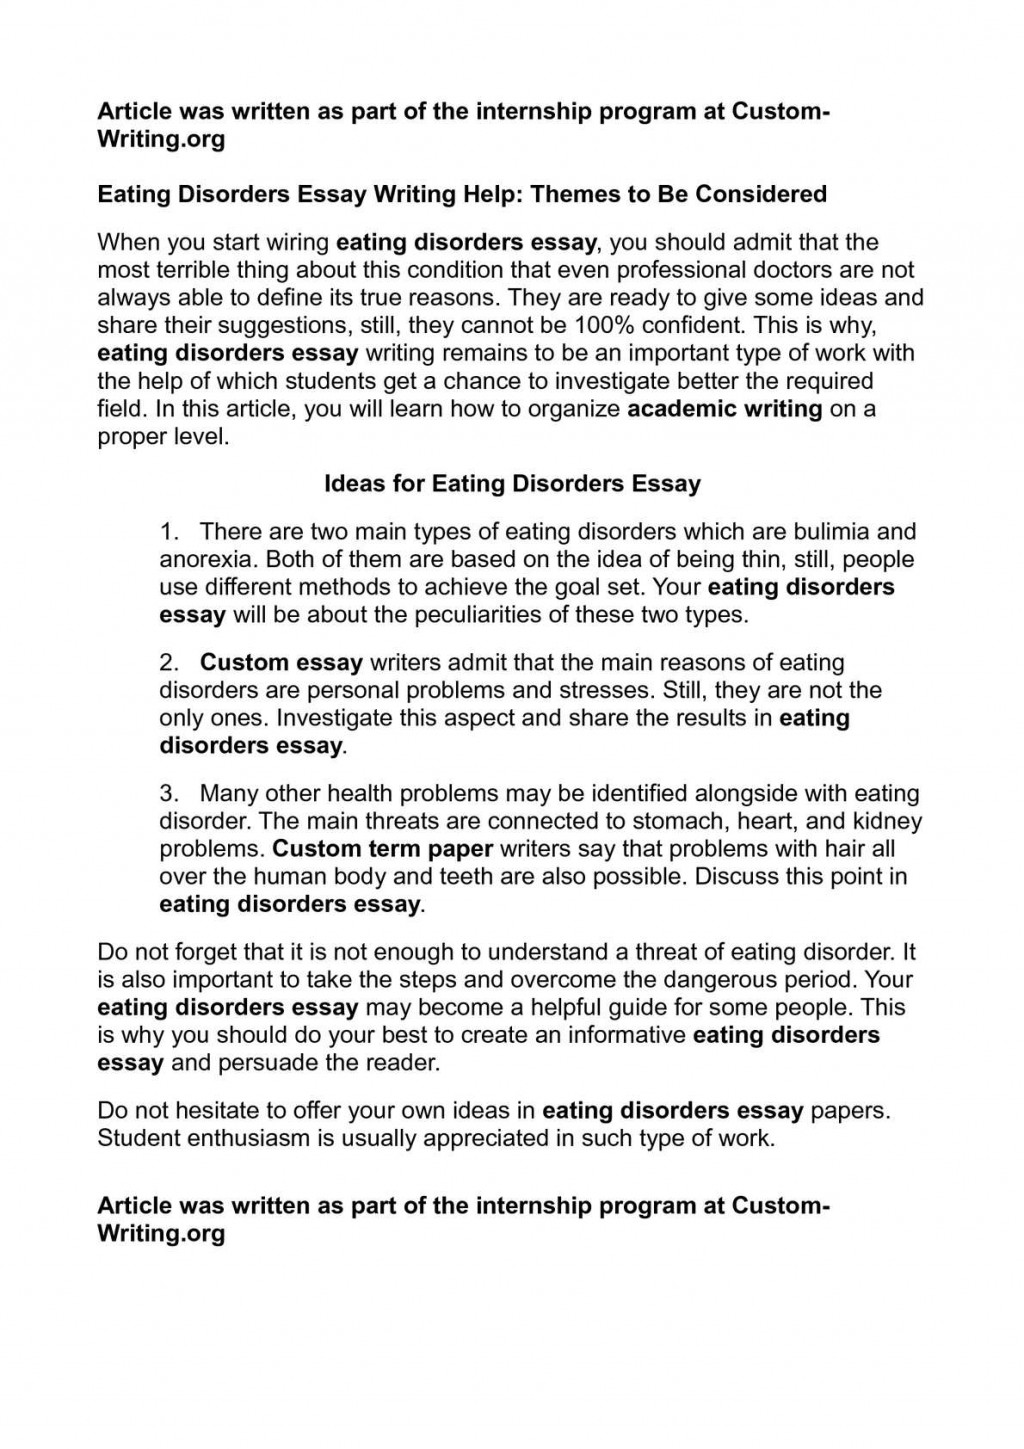 003 Eating Disorders Essay P1 Outstanding Psychology Title Essays Conclusion Large